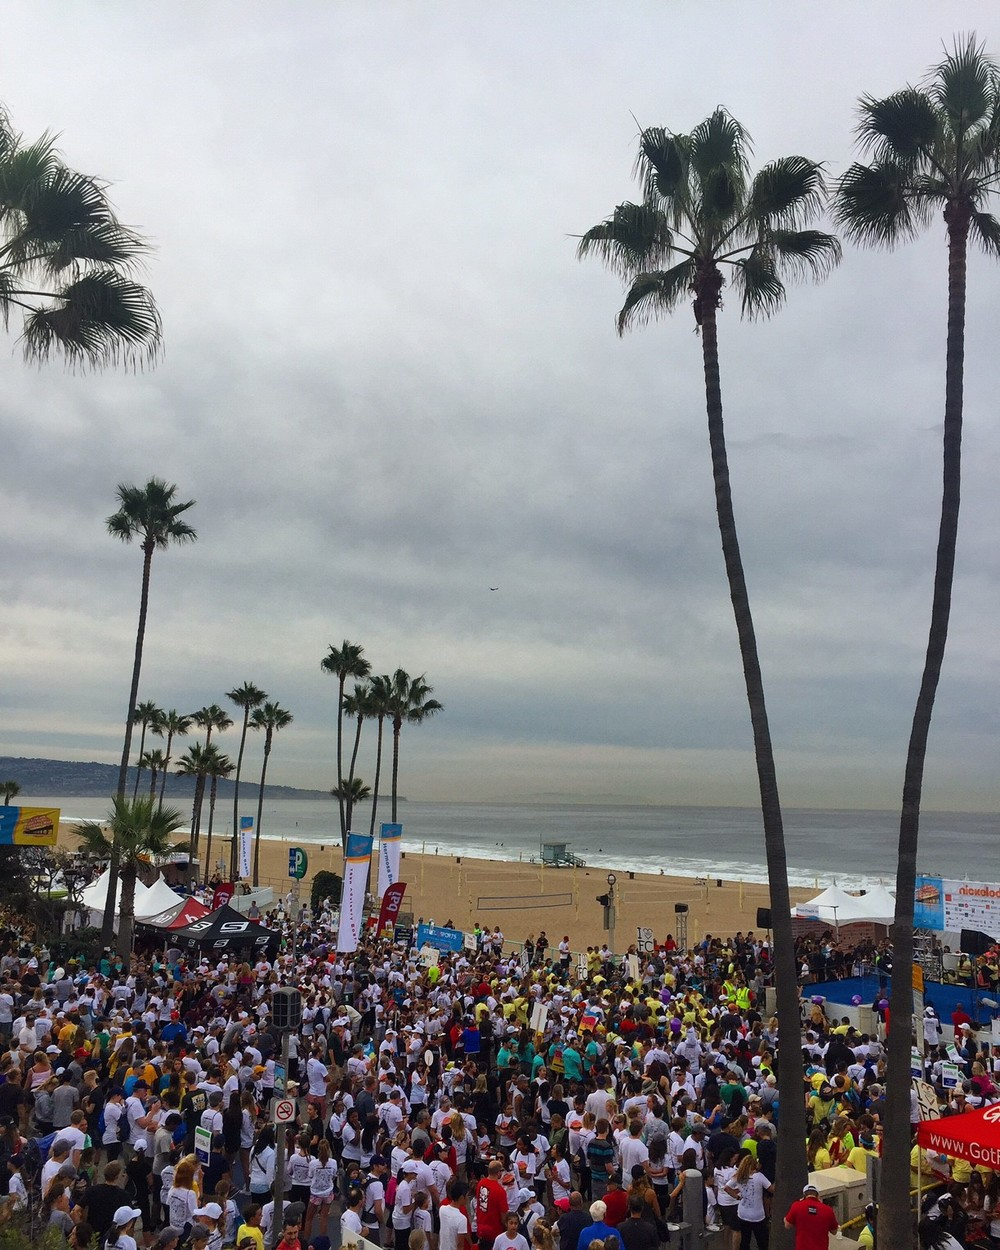 Participants in the 2015 Skechers Pier to Pier Friendship Walk helped to raise a record $1.4 million dollars.